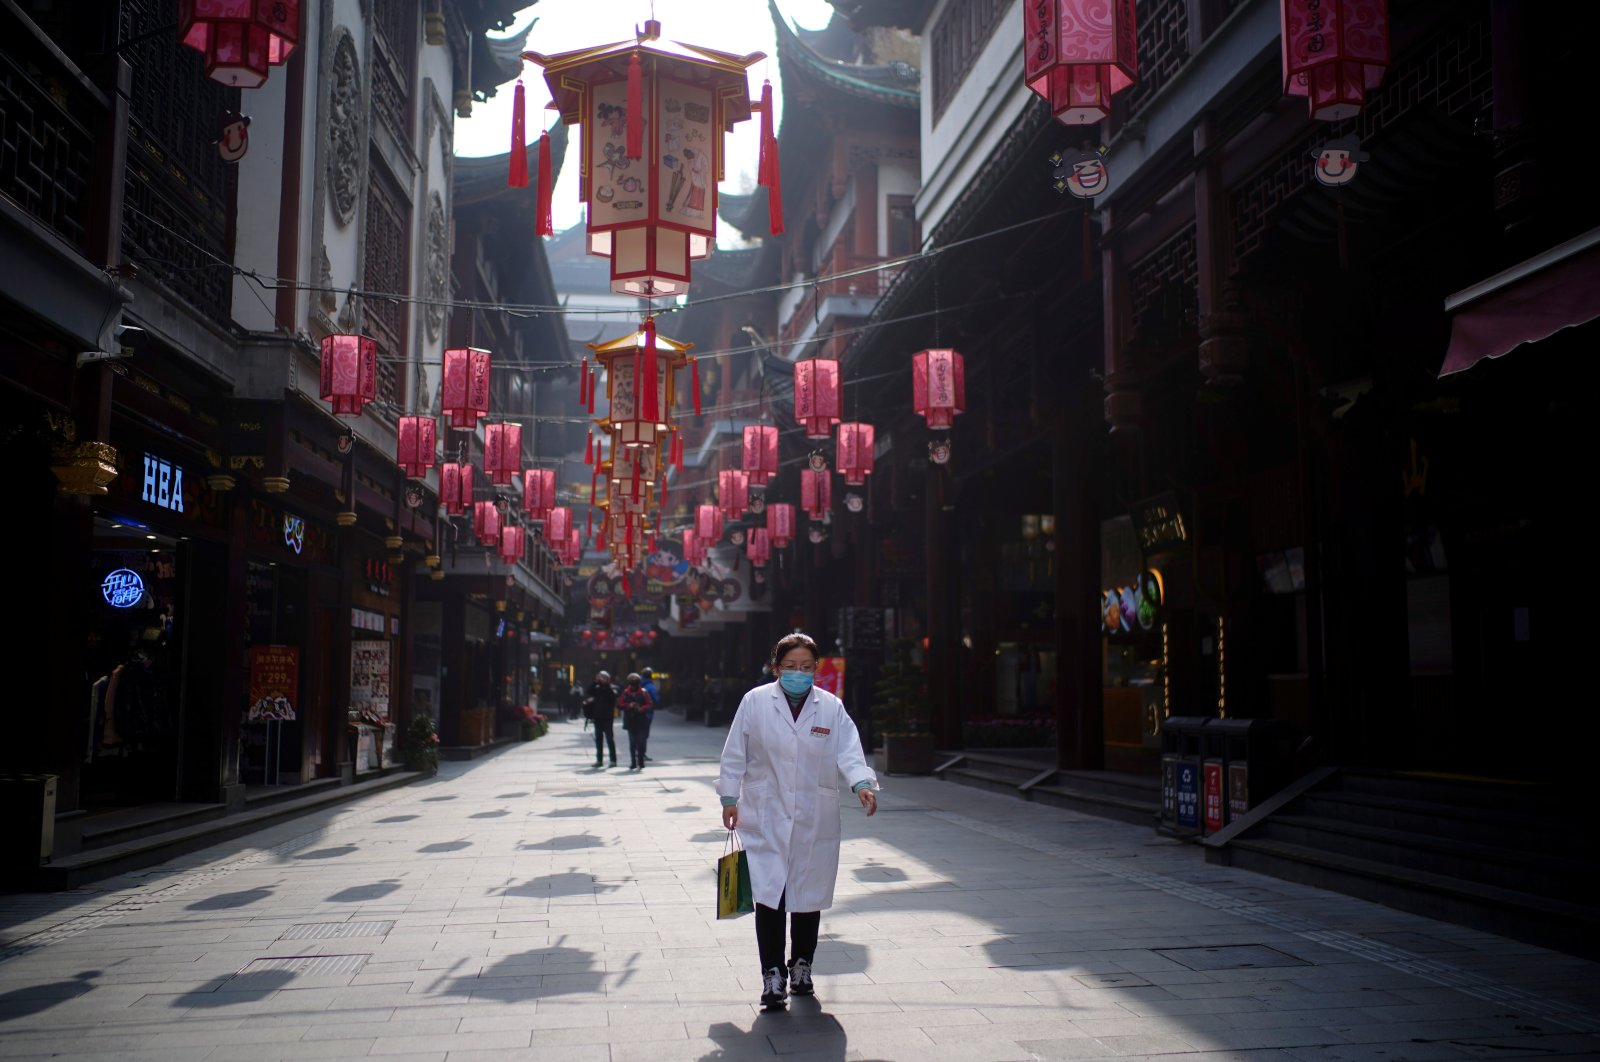 A woman wearing a mask walks at Yu Garden decorated with lanterns ahead of the Chinese Lunar New Year festivity, following a coronavirus outbreak in Shanghai, China, Jan. 27, 2021. (Reuters Photo)